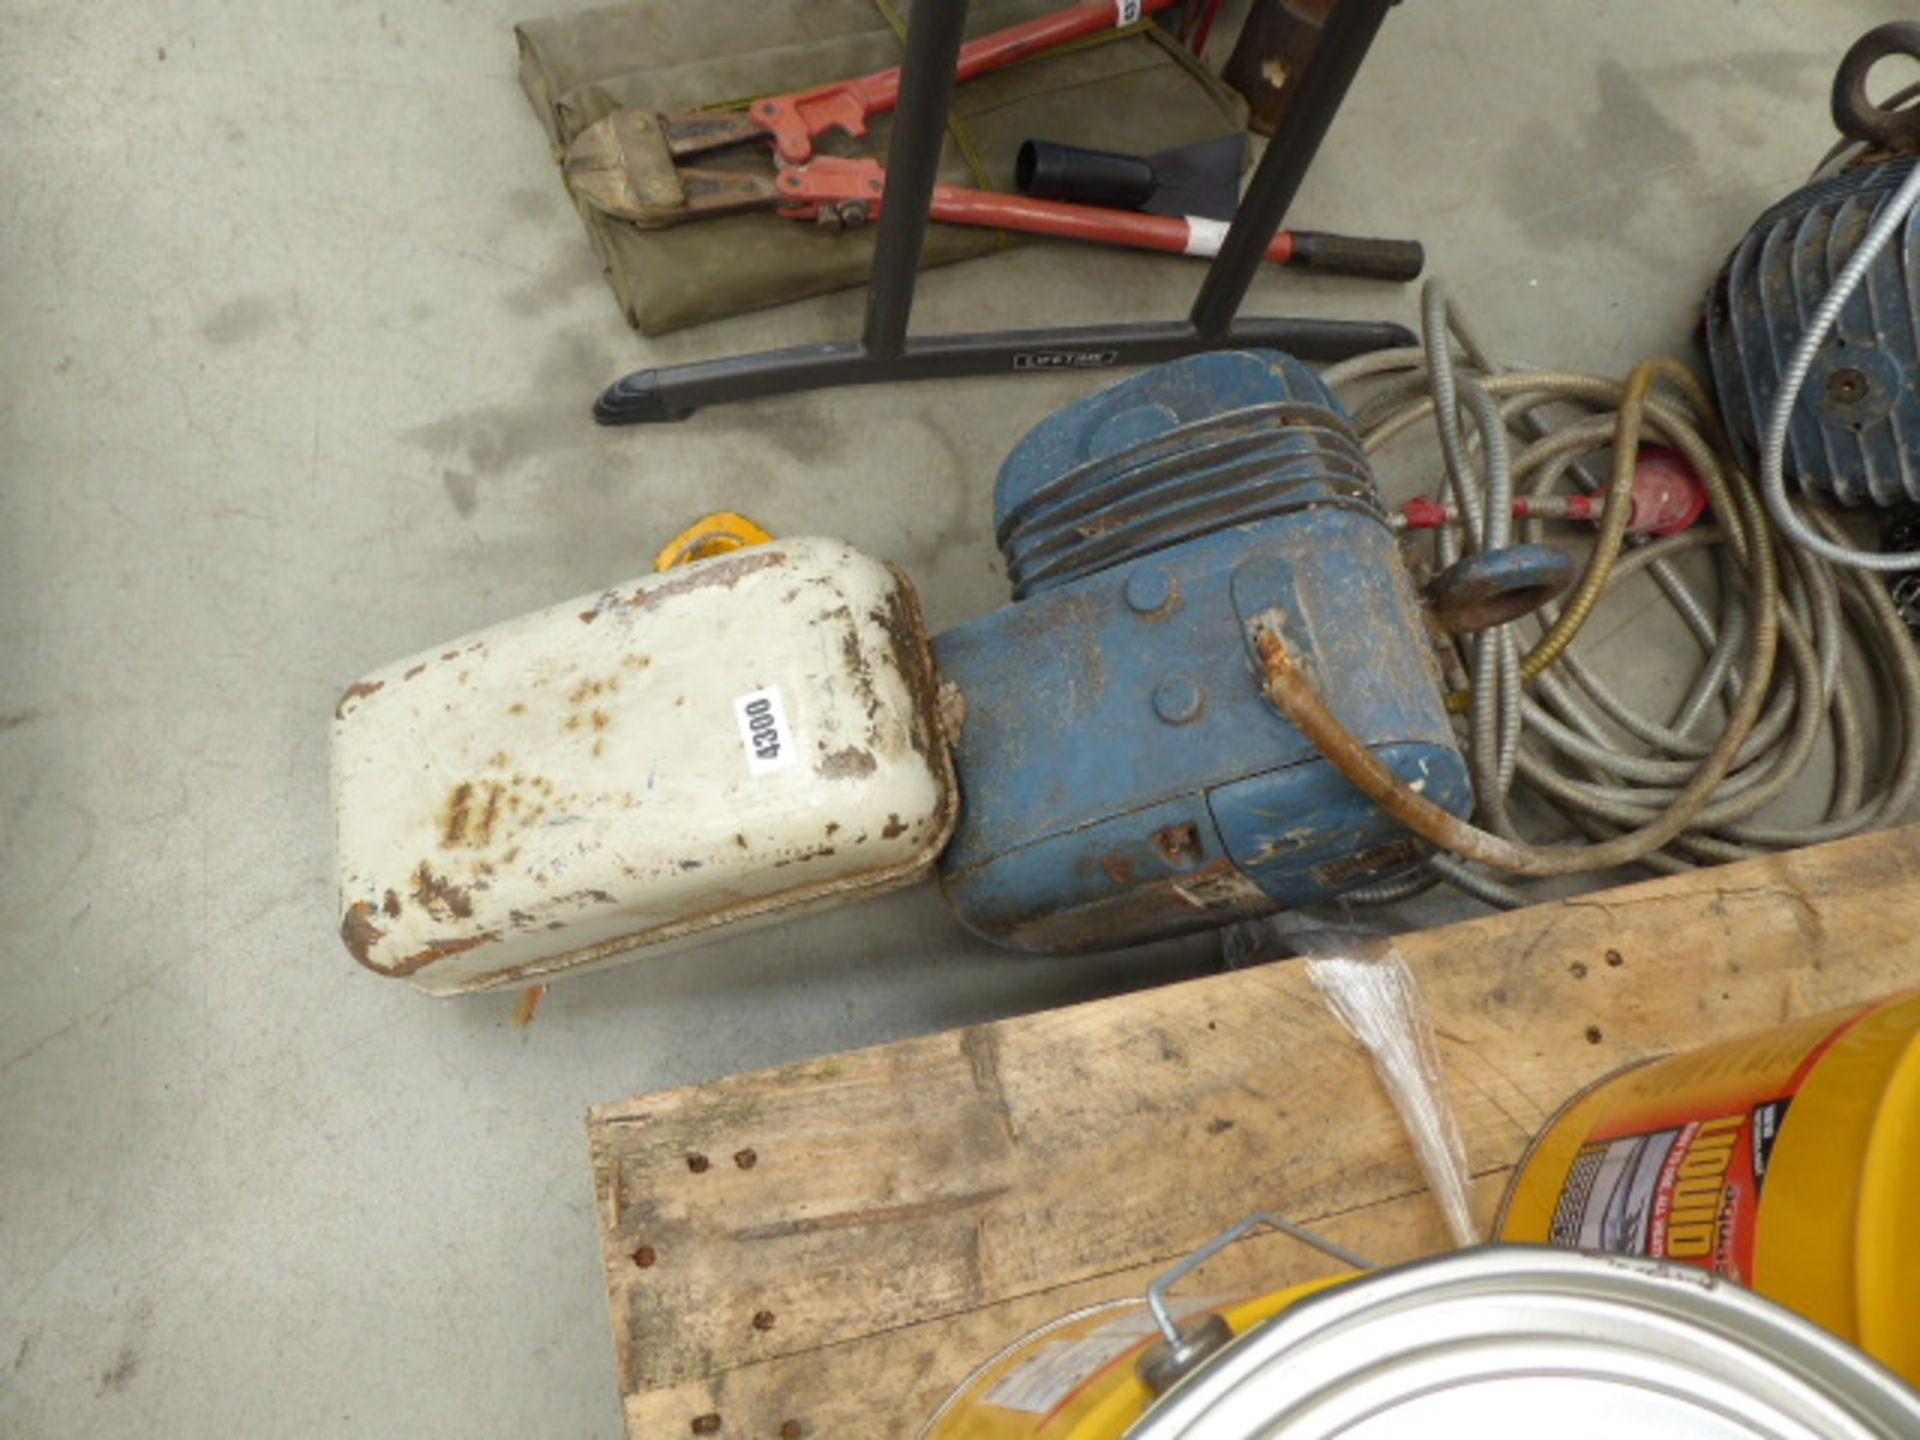 Lot 4300 - Large electric hoist